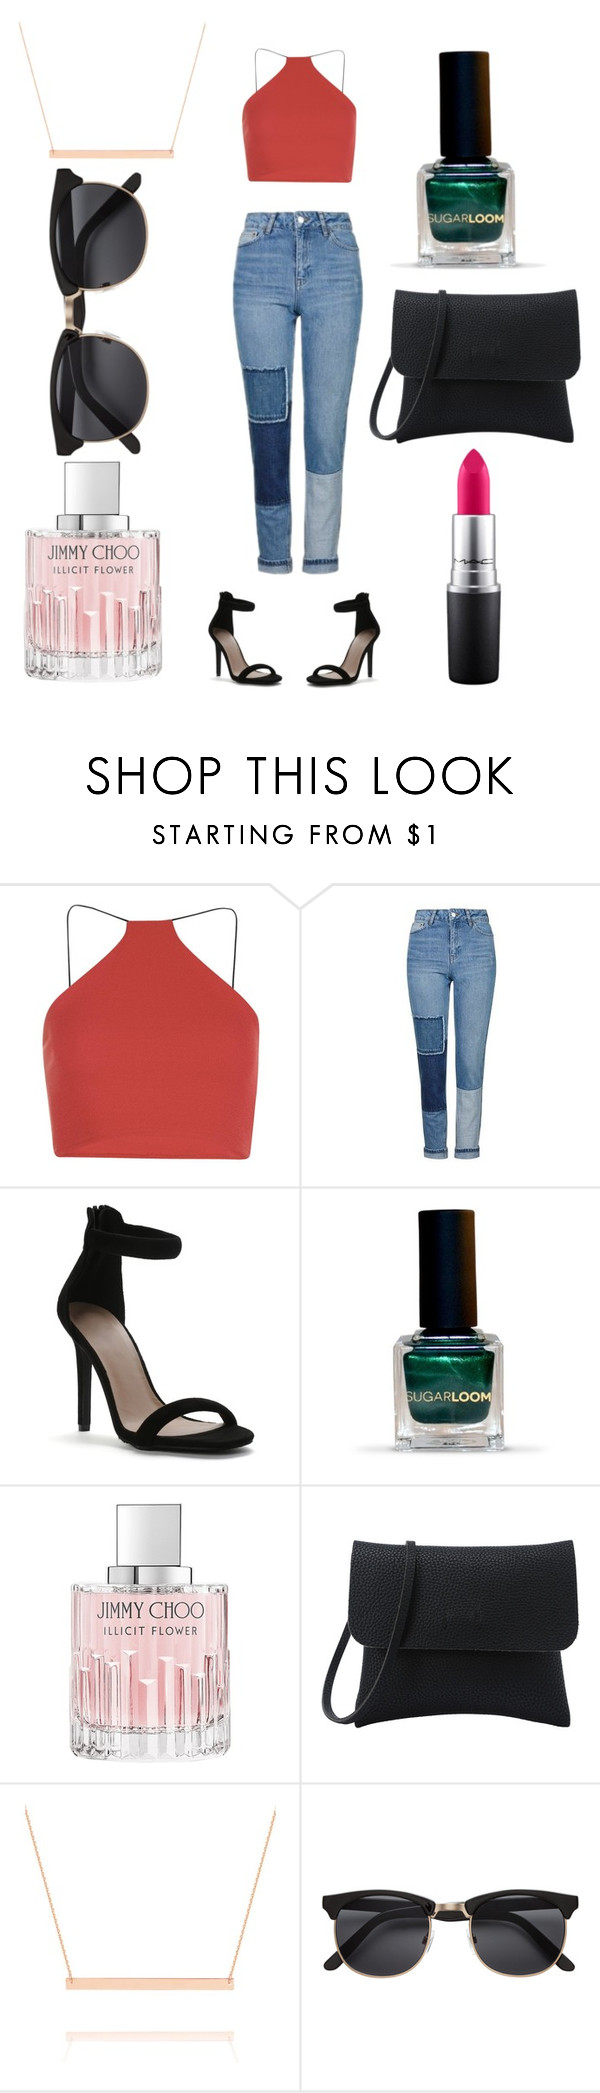 """""""Senza titolo #19"""" by rebeccabolzoni ❤ liked on Polyvore featuring Milly, Topshop, Jimmy Choo, Belk & Co. and MAC Cosmetics"""